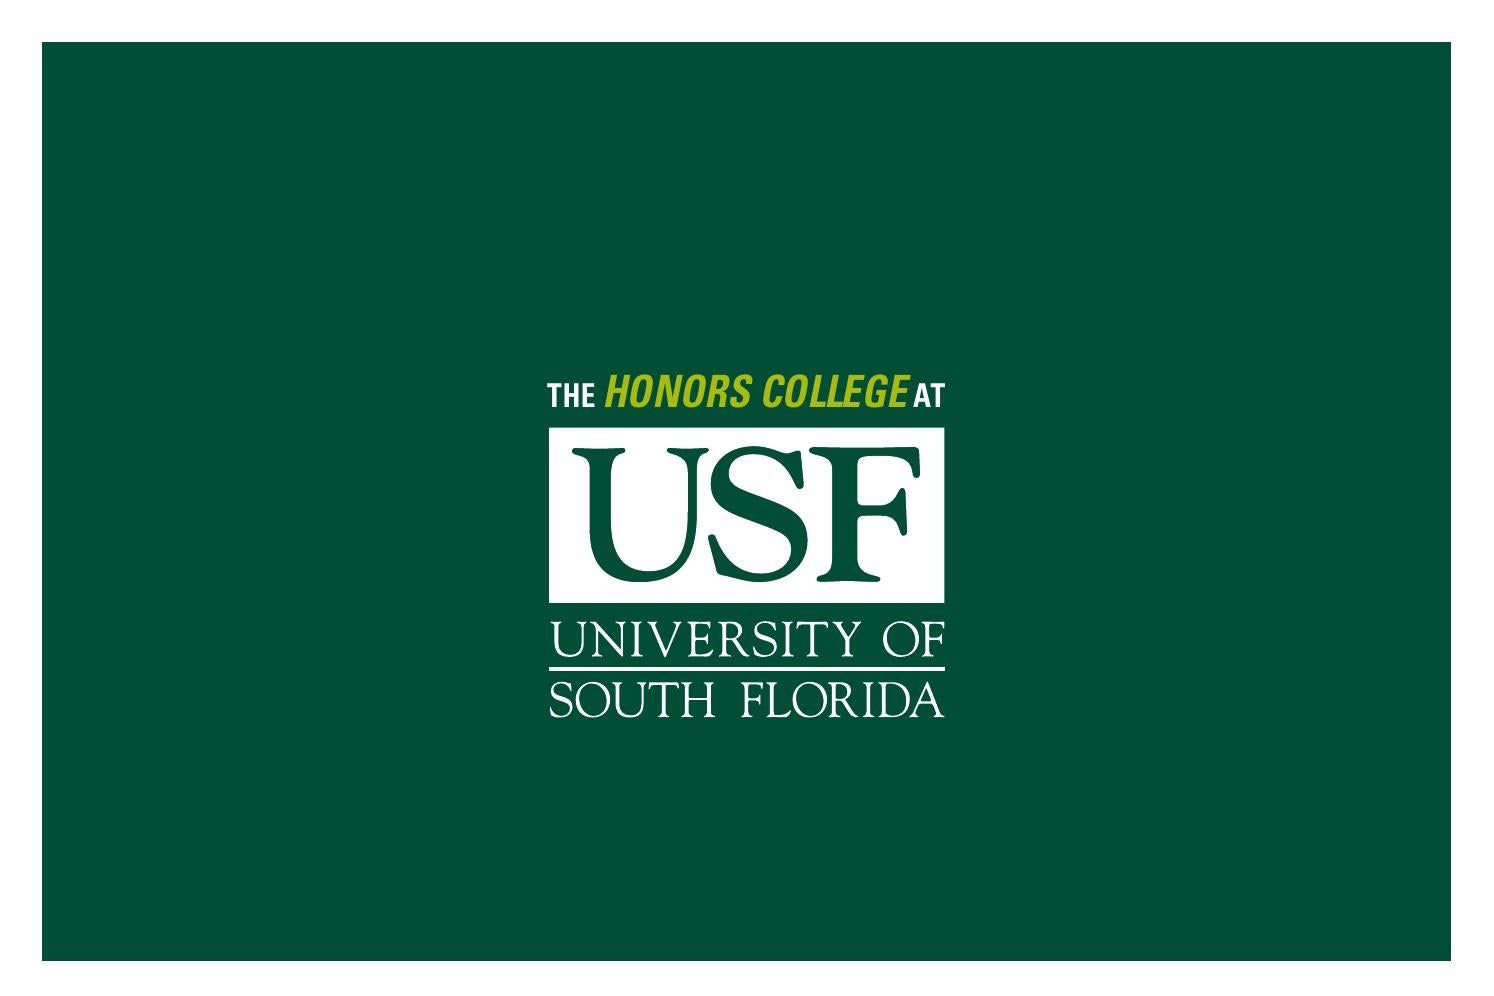 usf honors thesis permit